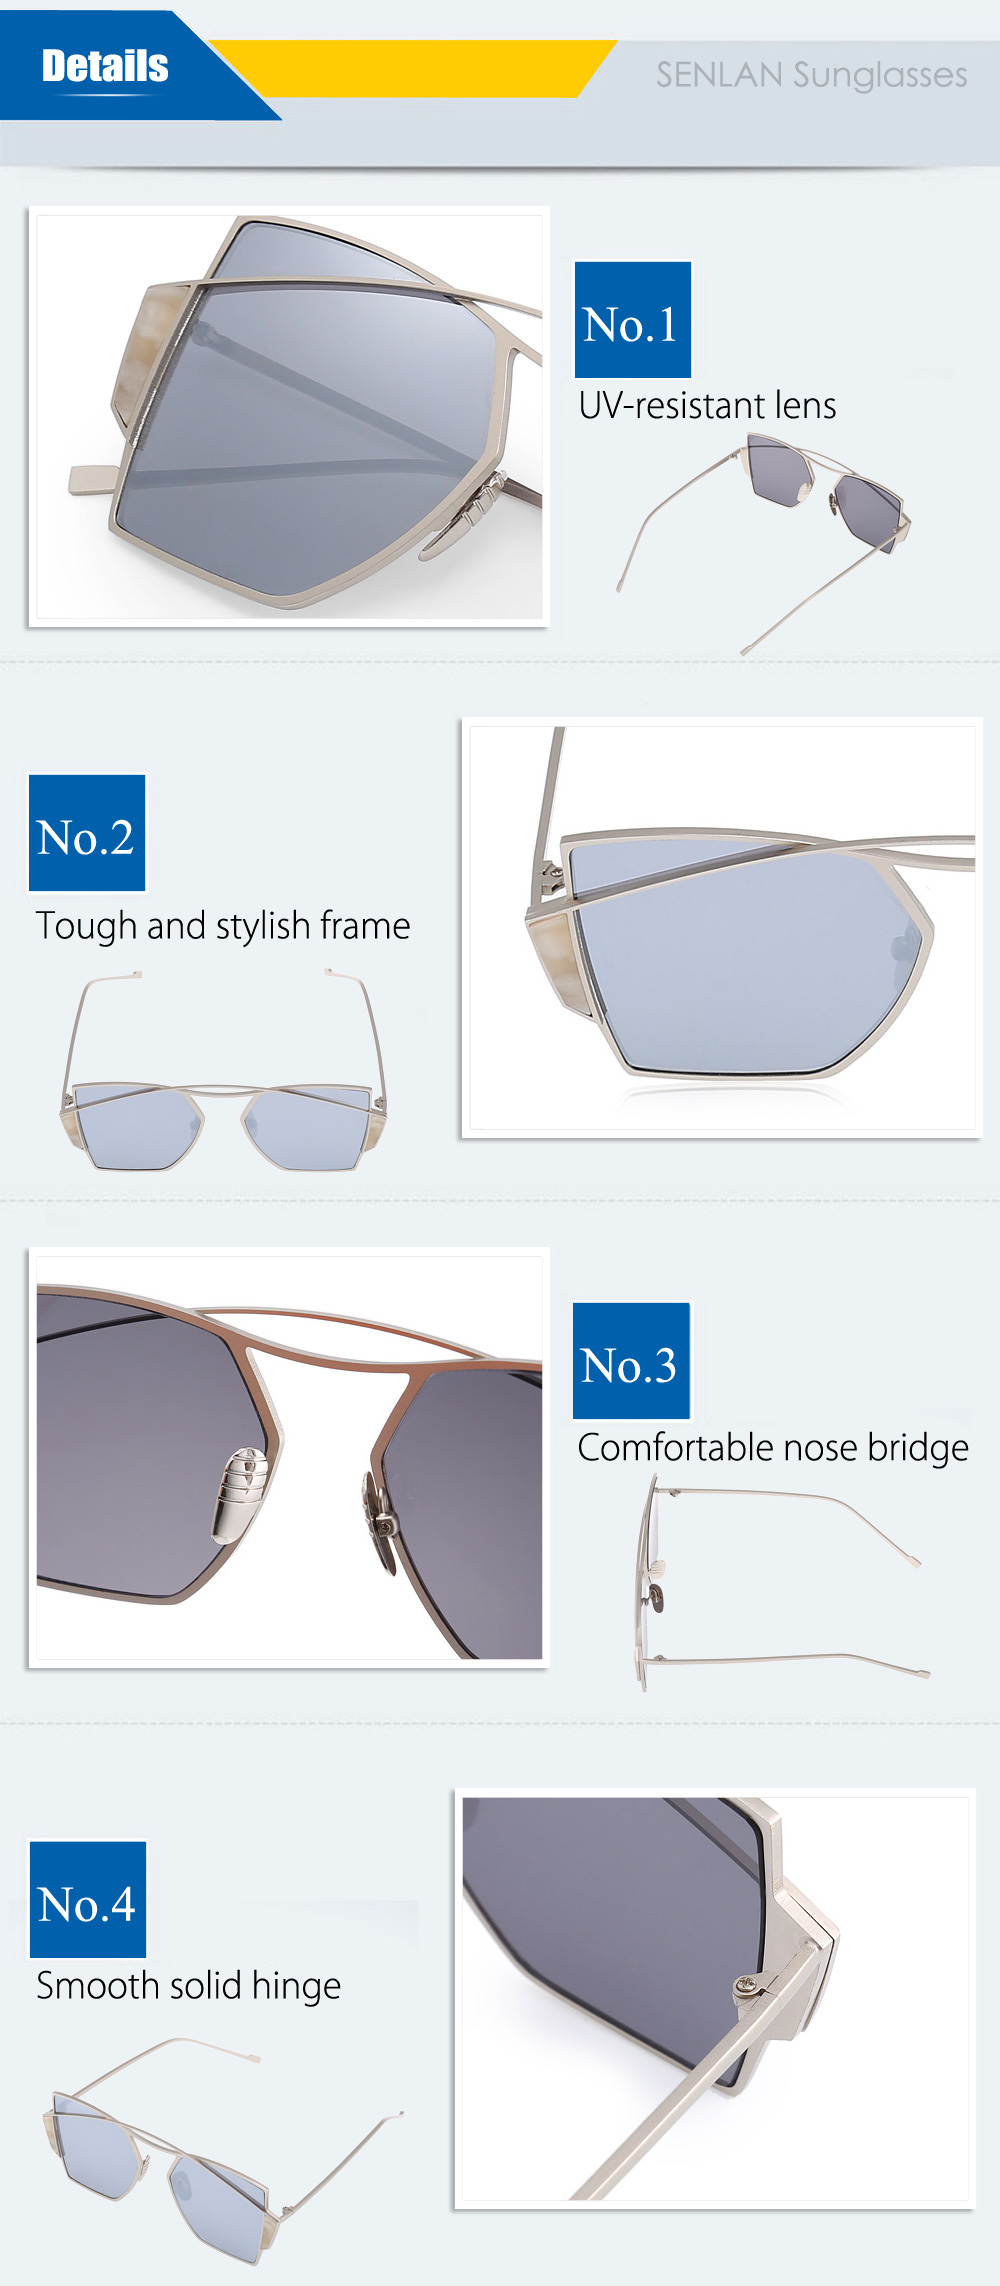 SENLAN 2109 UV-resistant Sunglasses with PC Lens